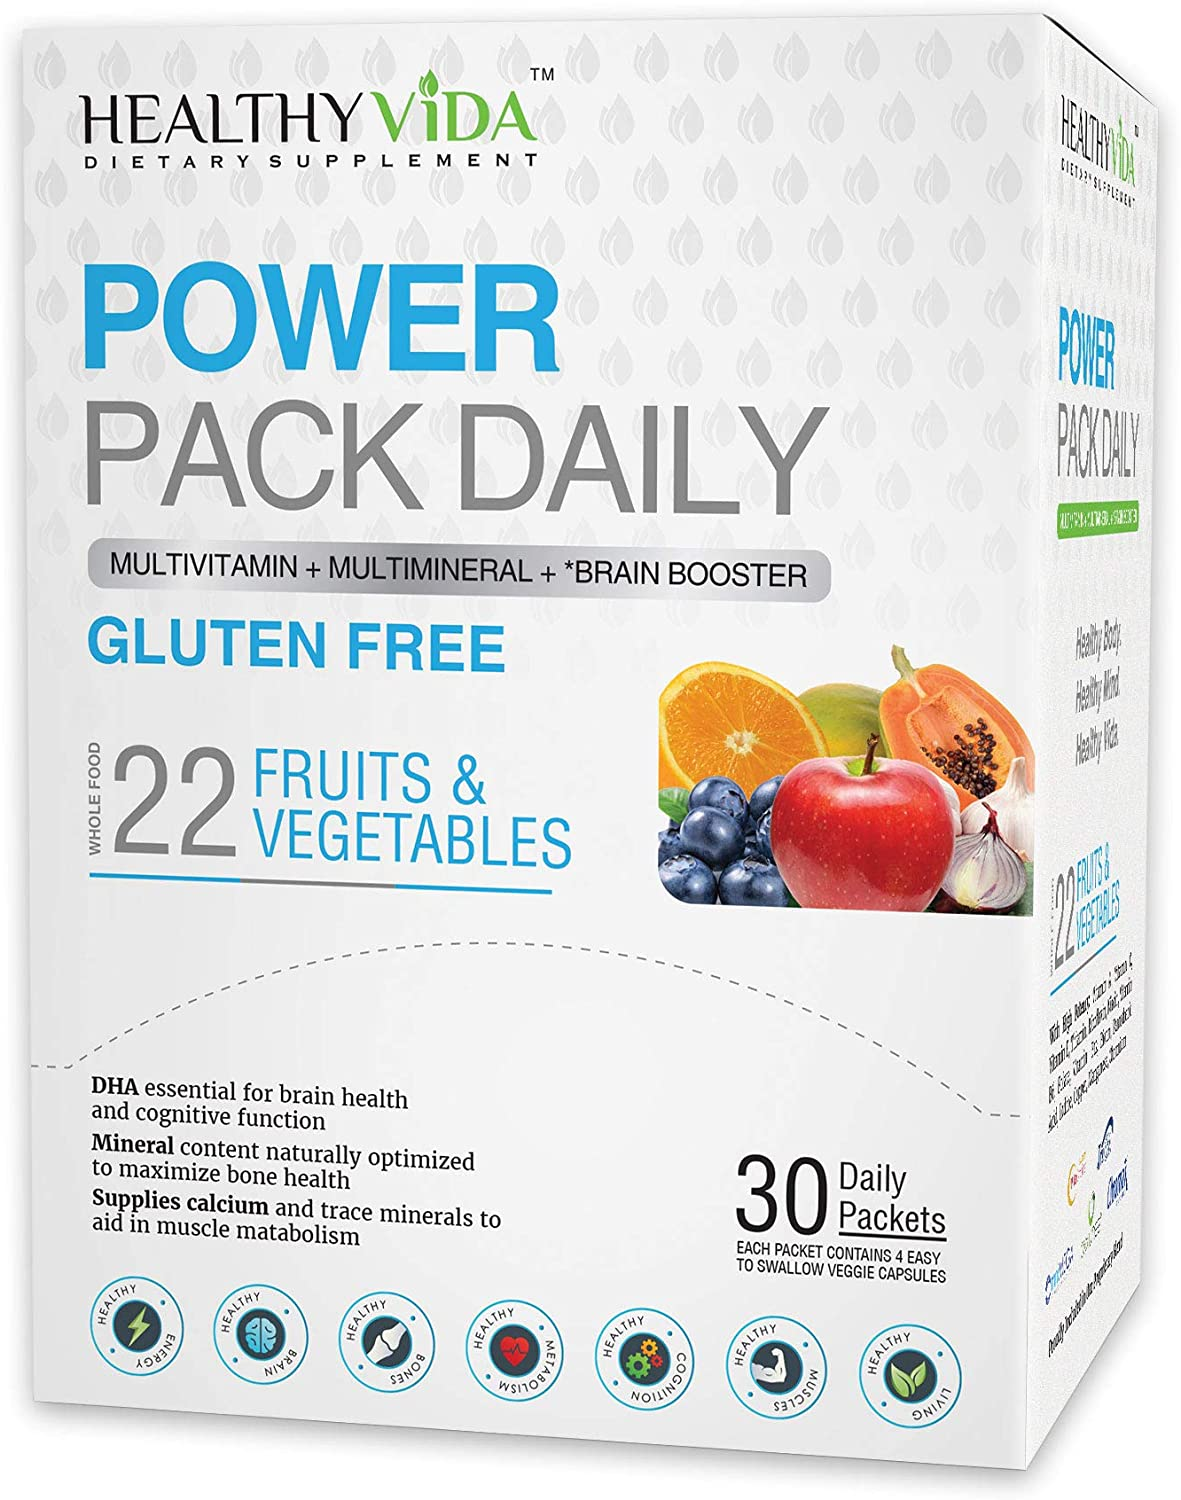 Healthy VIDA Power Pack Daily Multi Vitamin, Multi Mineral and Nootropic for Women and Mens Health